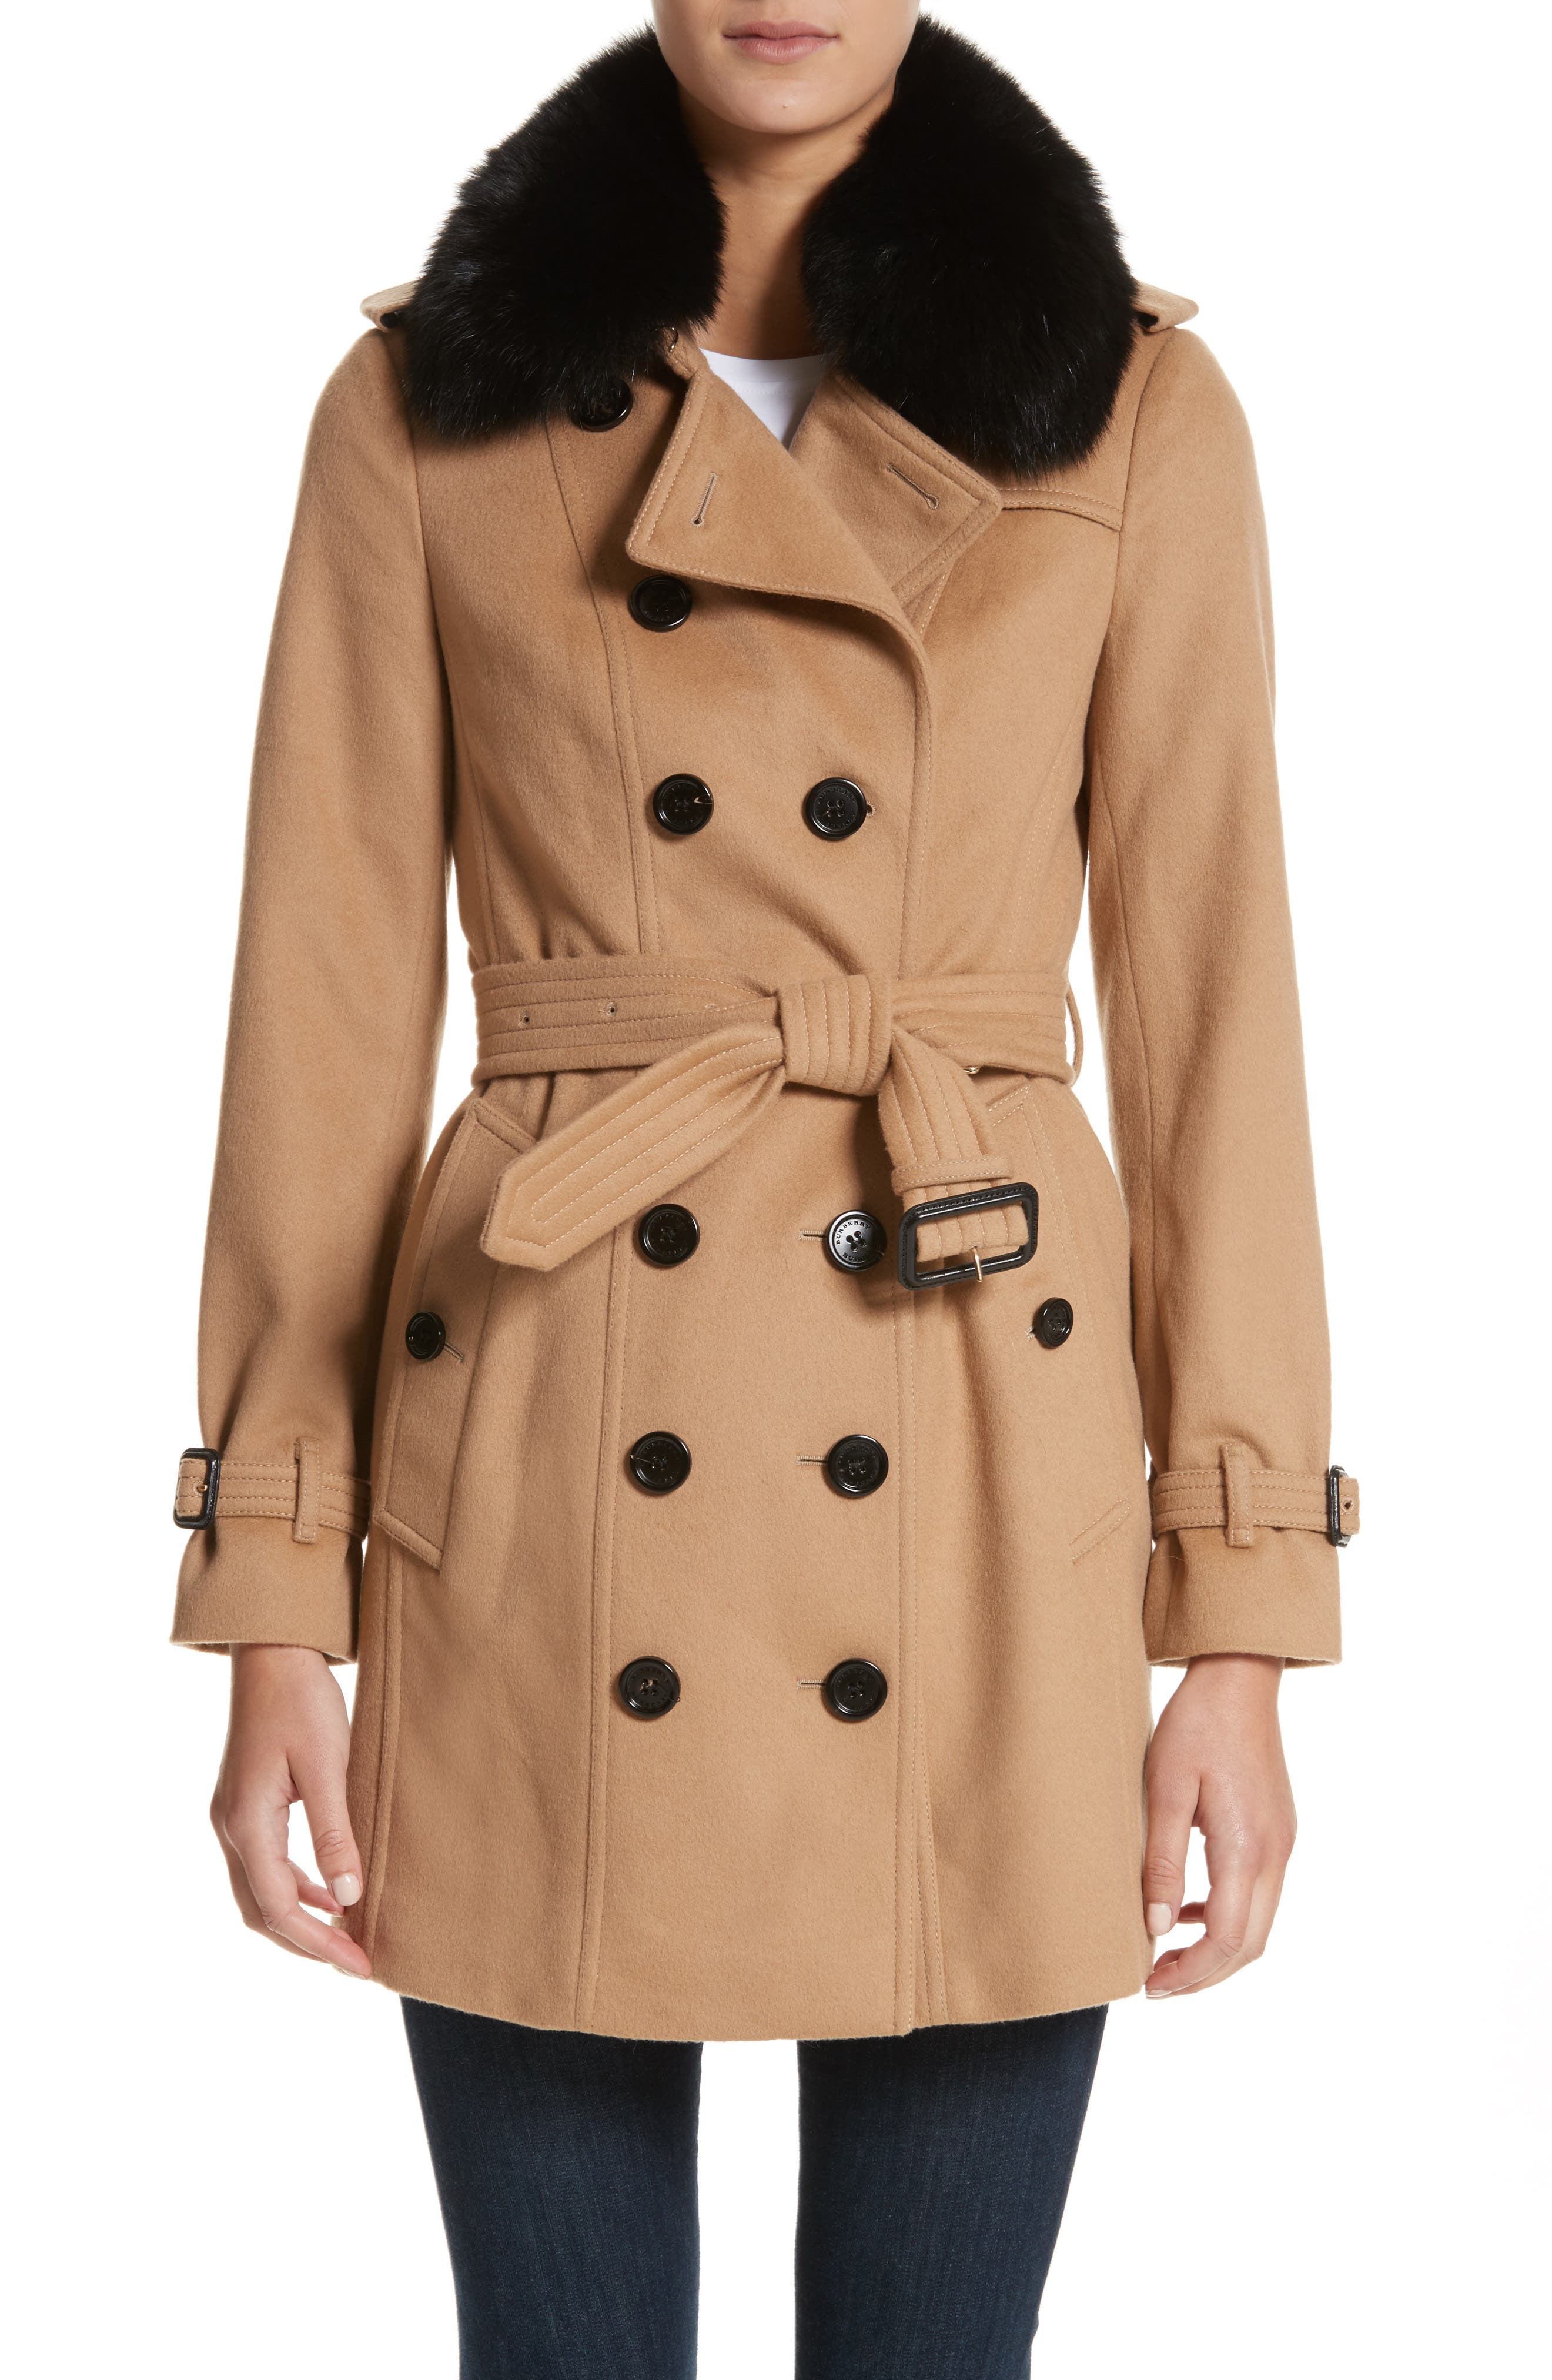 Burberry Sandringham Wool & Cashmere Trench Coat with Removable Genuine Fox Fur Collar